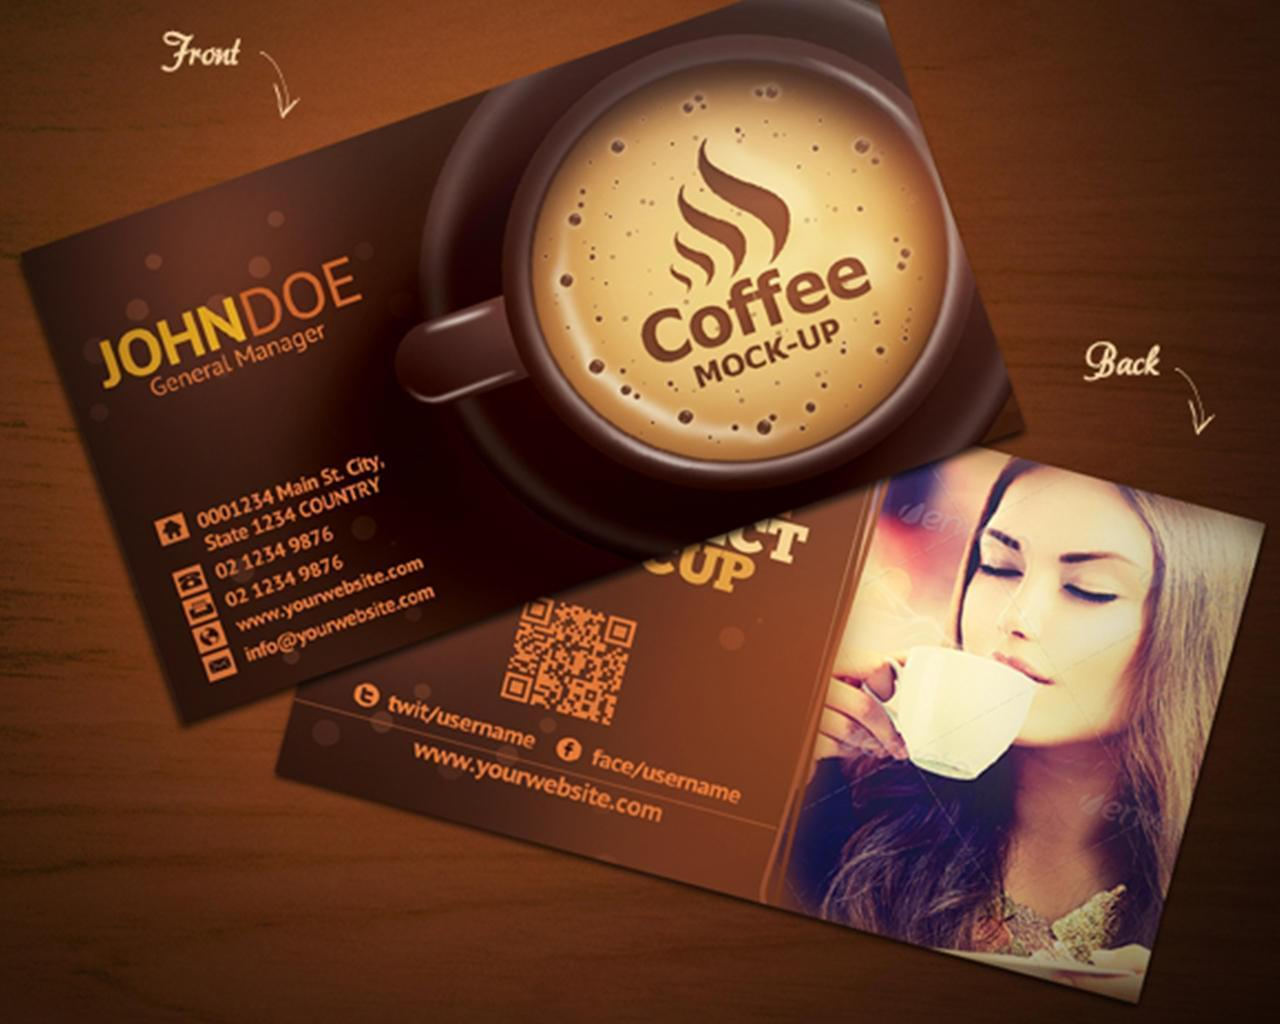 Creative and Professional Business Card Desing by hsynkyc - 114501